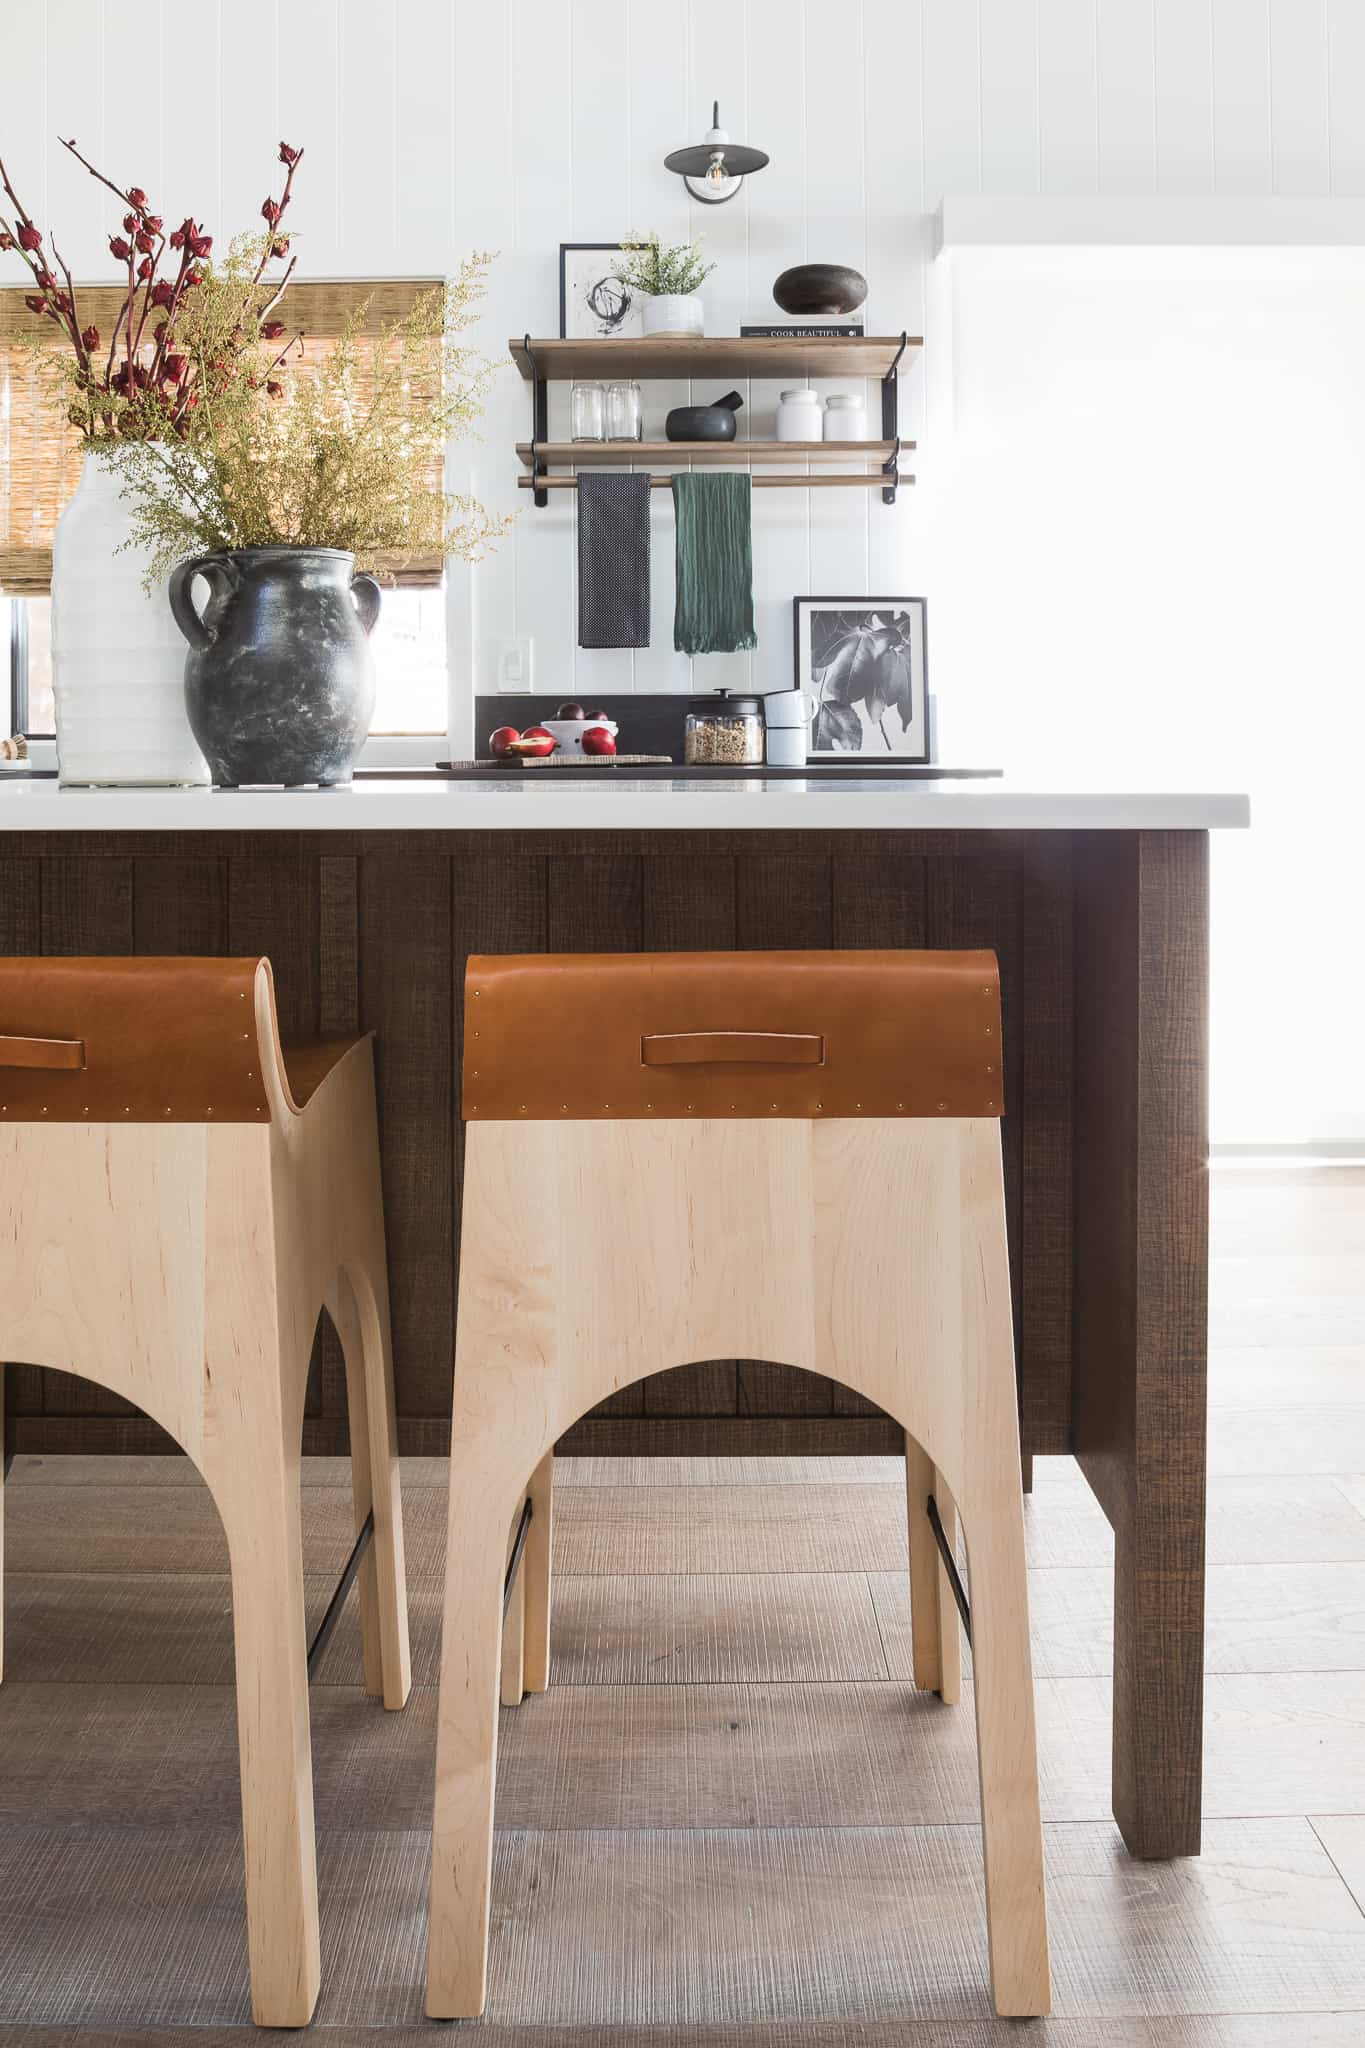 The MGD Barstool & Counter Stool Roundup - Mindy Gayer Design Co.